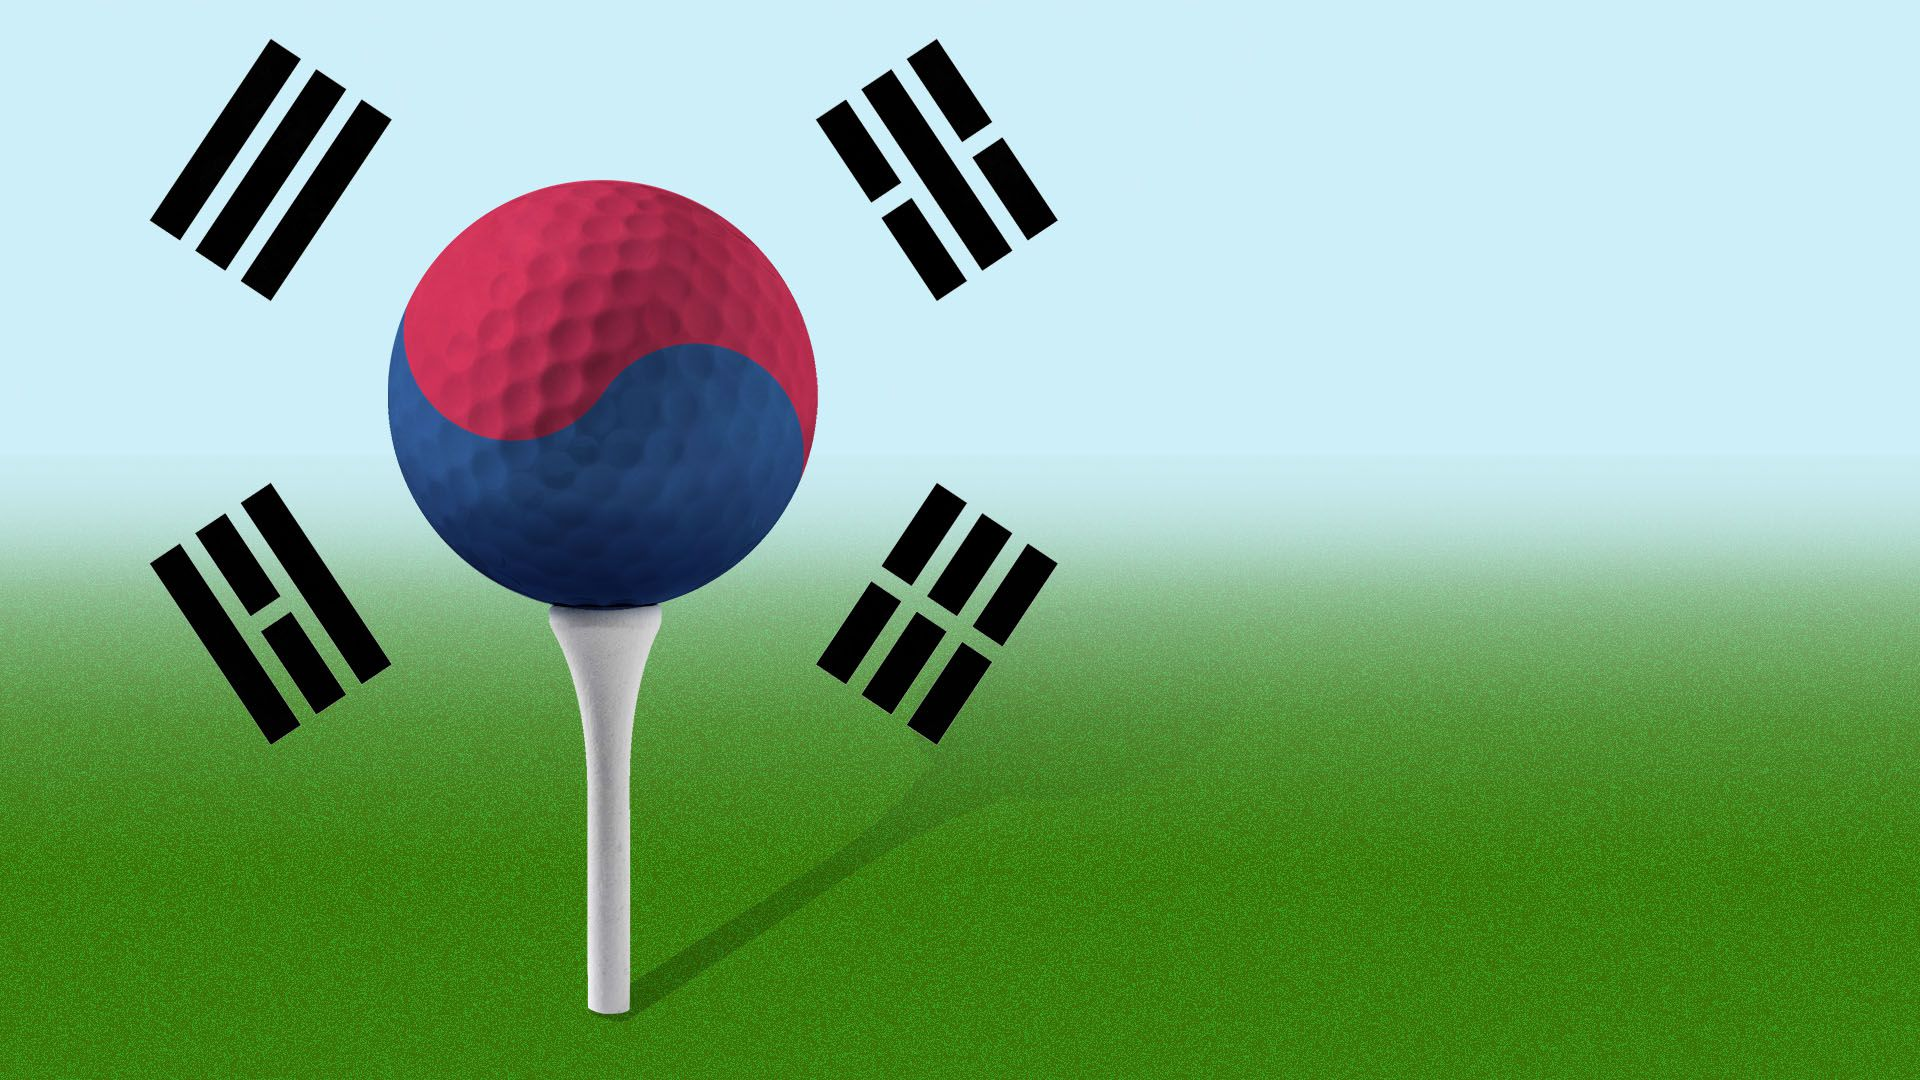 Illustration of a golf ball on a tee with the Korean flag over it